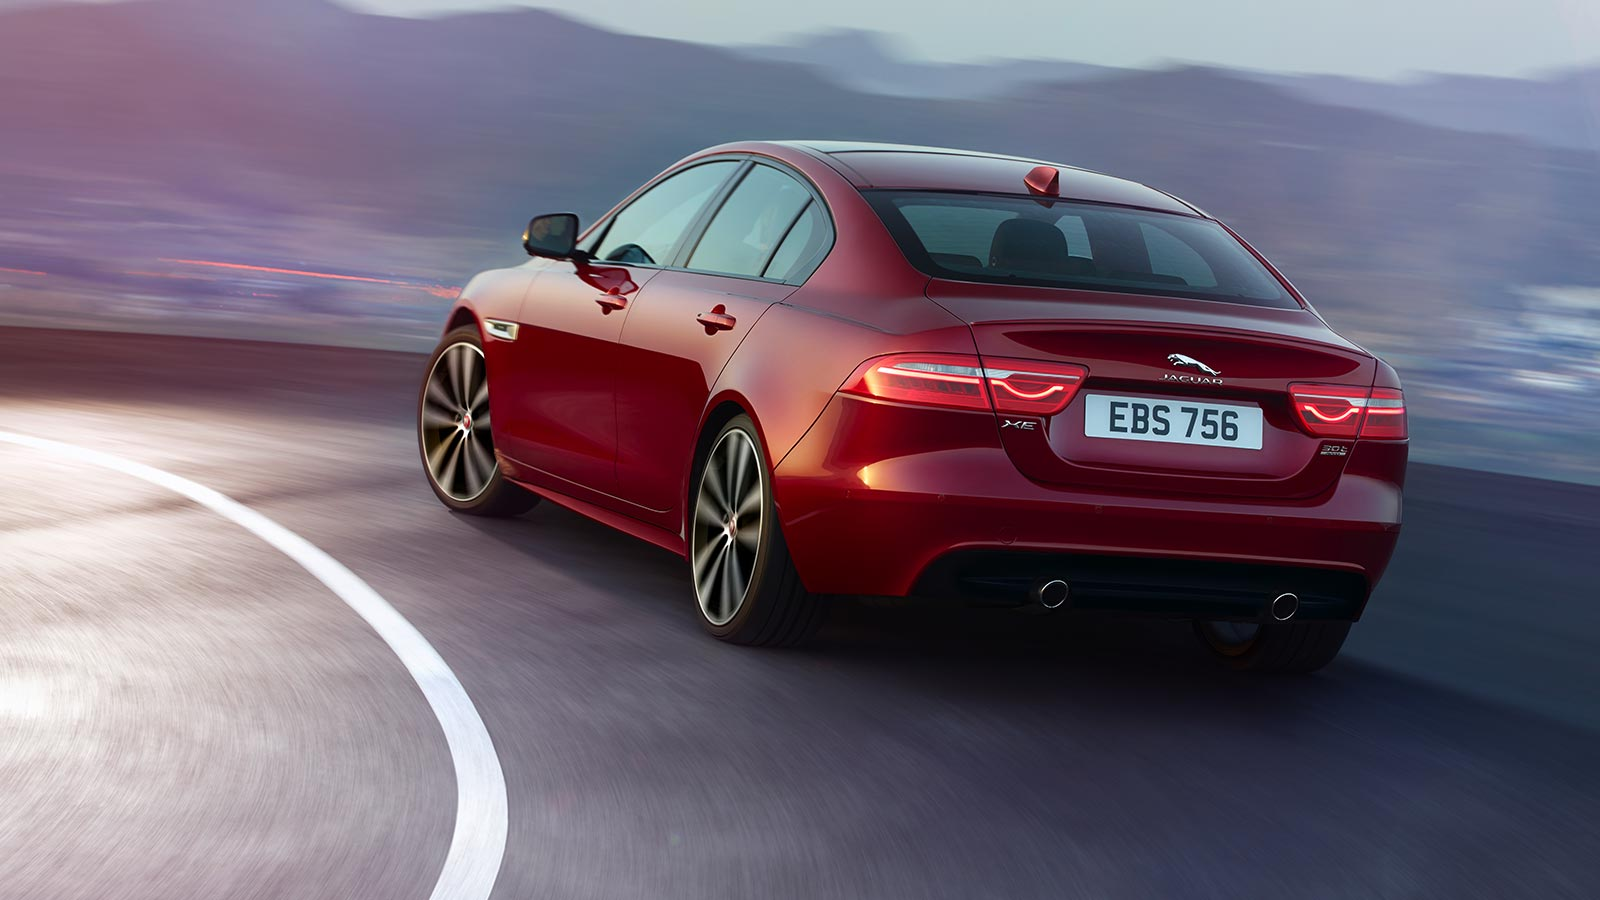 Rear view of Jaguar XE S cornering.